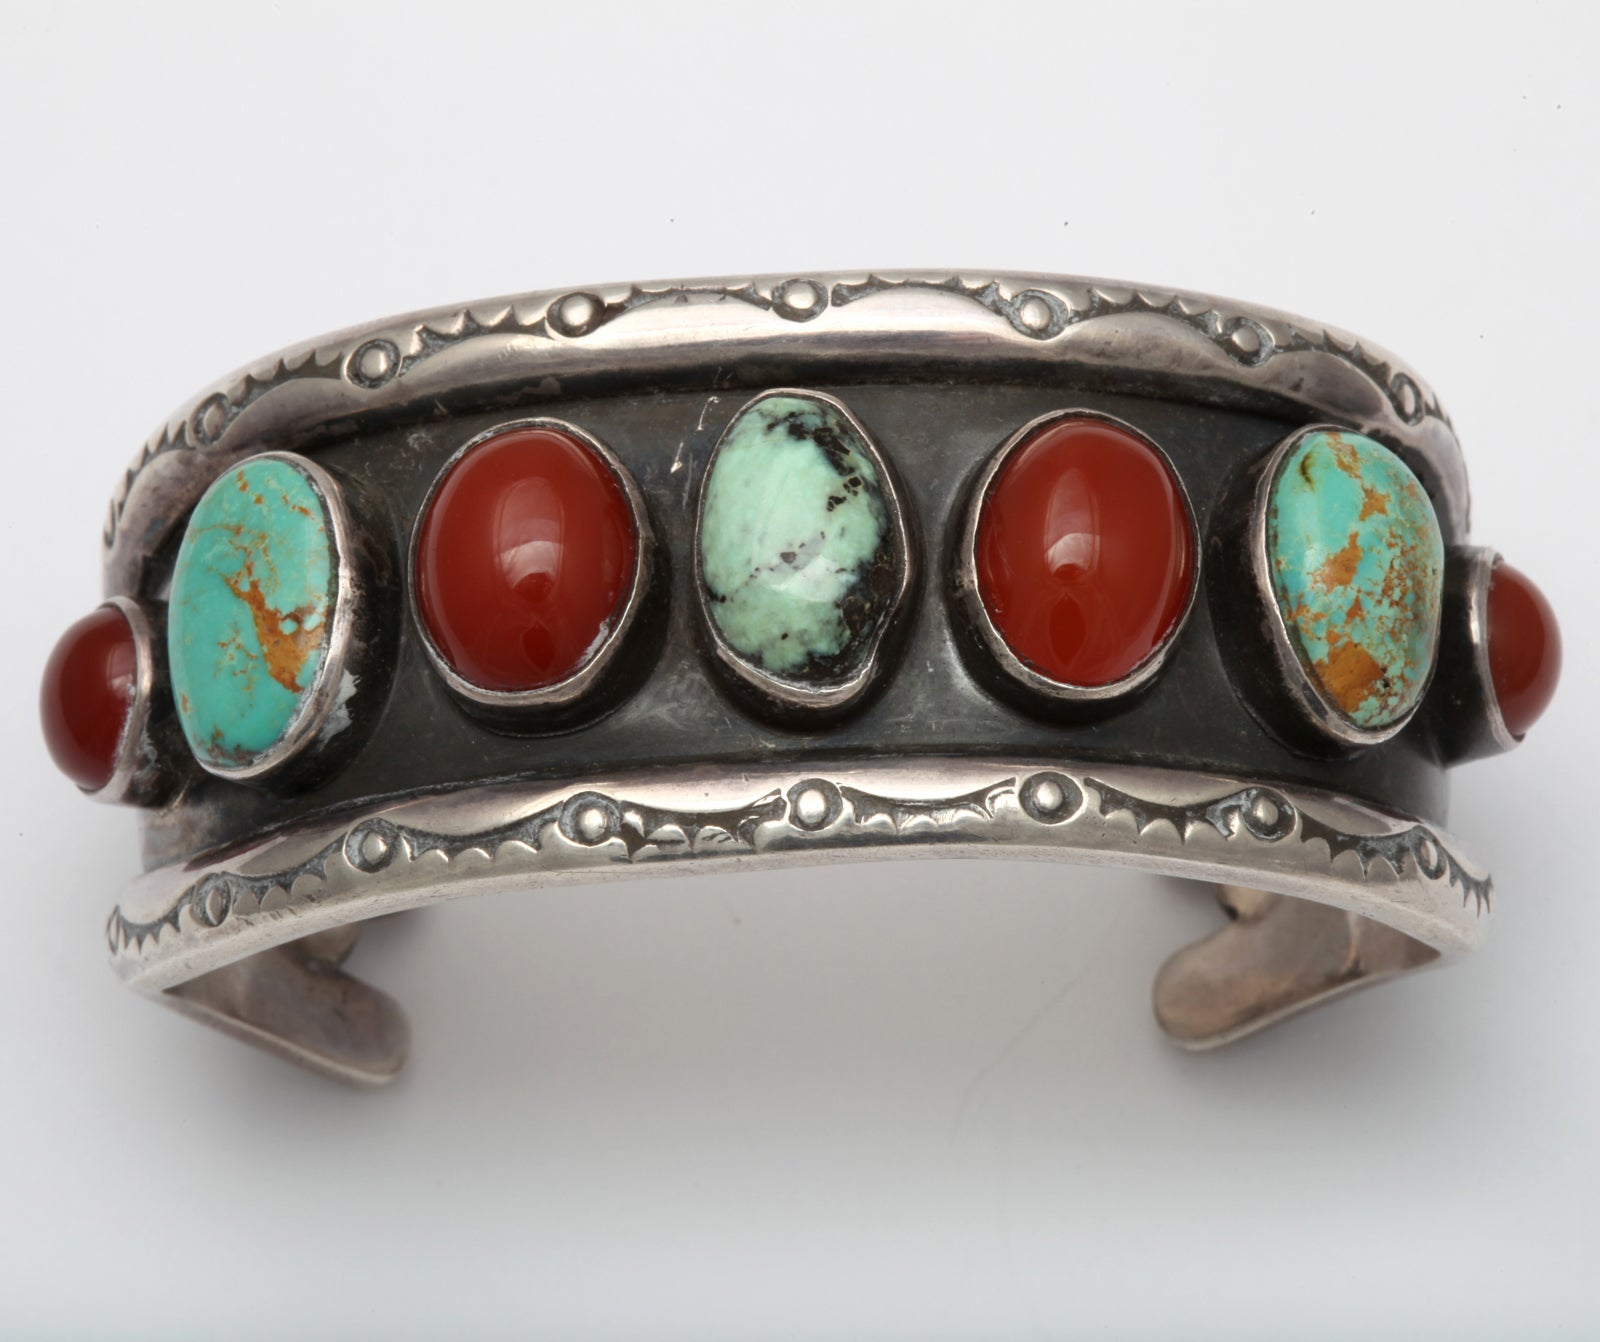 The colors of matrix turquoise and carnelian are a warm and beautiful combination in this hand made Native American cuff from Santa Fe. The stones stand out from their anodized silver background made more dramatic by the natural sterling borders.